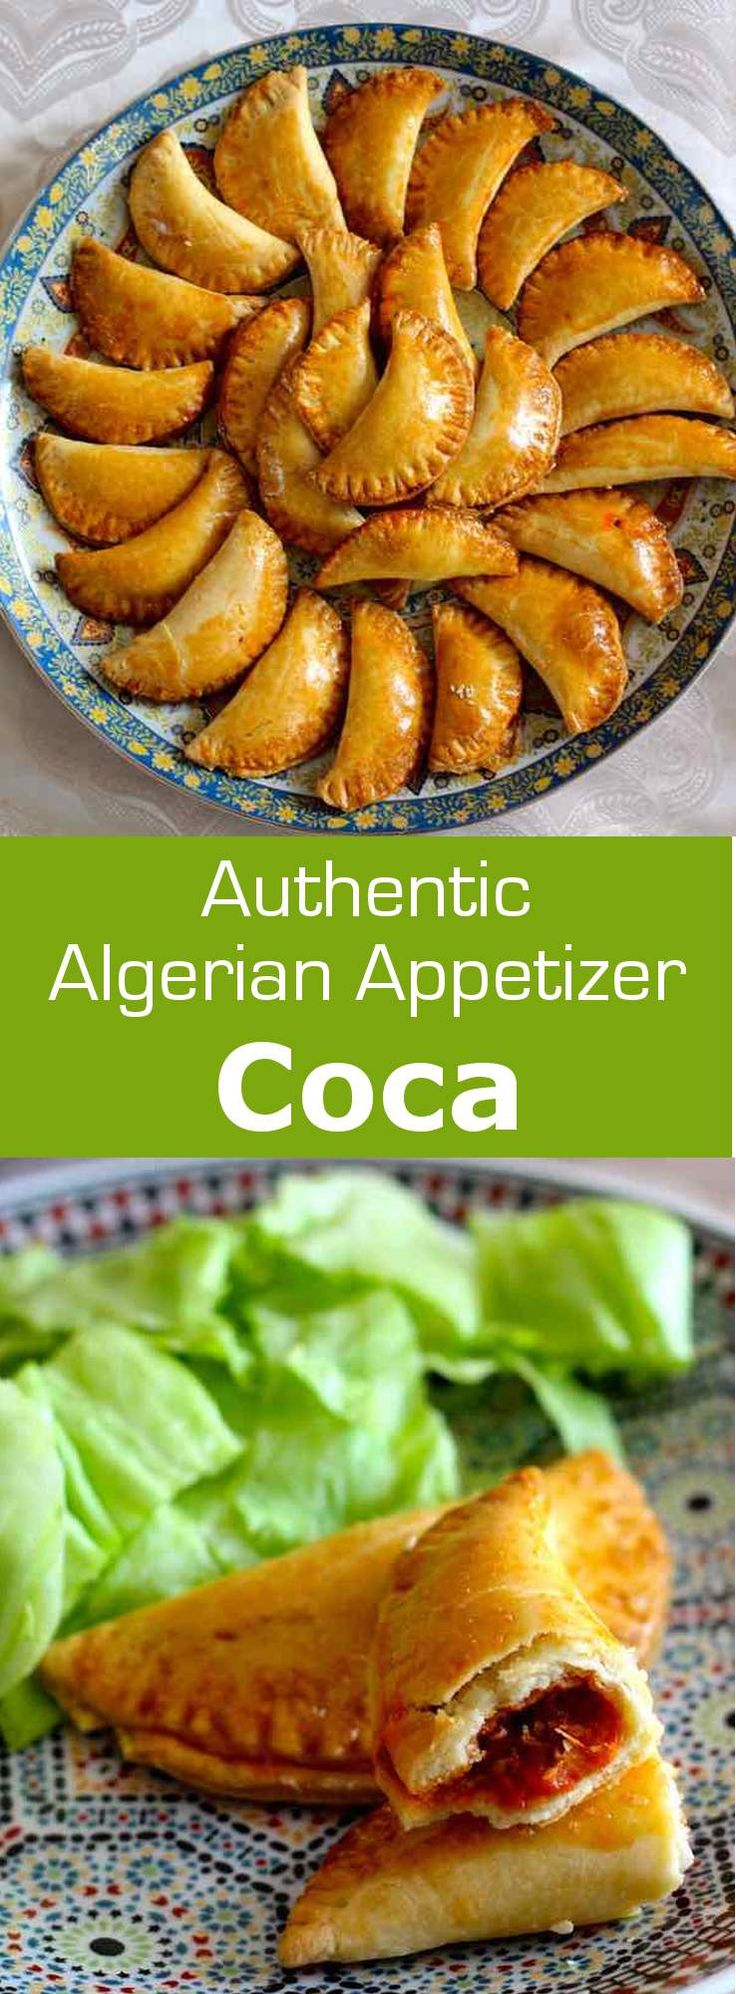 An Algerian coca is a small turnover filled with frita, a mixture of bell peppers, tomatoes and onions that are simmered in olive oil. For the dough: 5 cups flour, 2 egg yolks, 3/4 cup olive oil, 1/2 cup water (more or less depending on the quality of the flour), 1-1/2 t salt. For frita: 2 green bell peppers, 2 red bell peppers, 1 onion and/or 3 garlic cloves, 8 fresh tomatoes, 1/4 cup olive oil